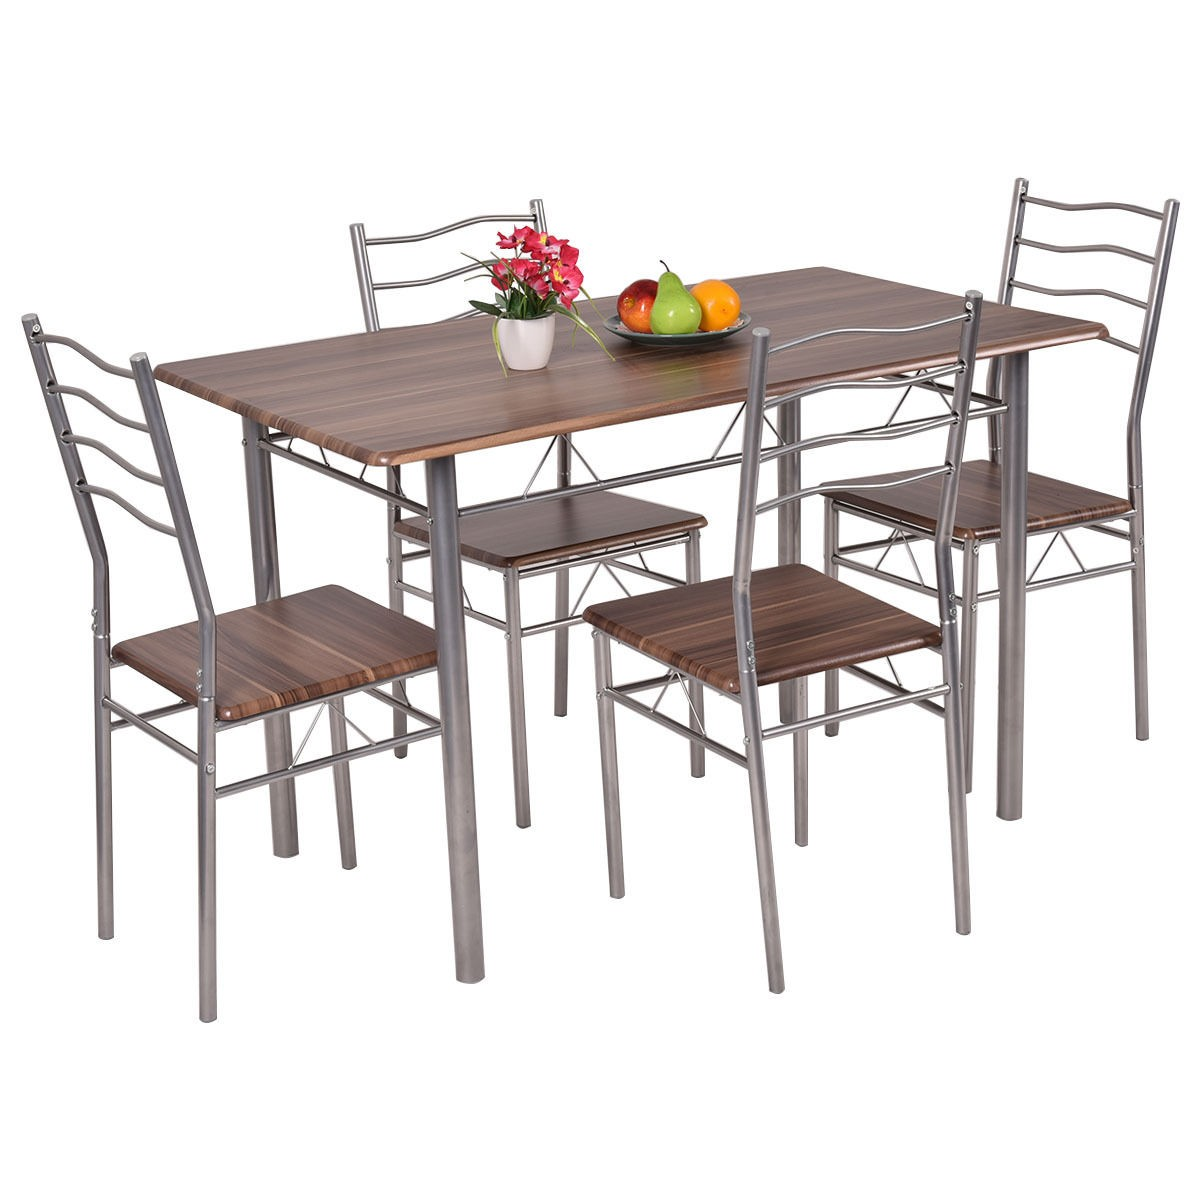 contemporary kitchen table and chairs 5 dining set wood metal table and 4 chairs kitchen 8320